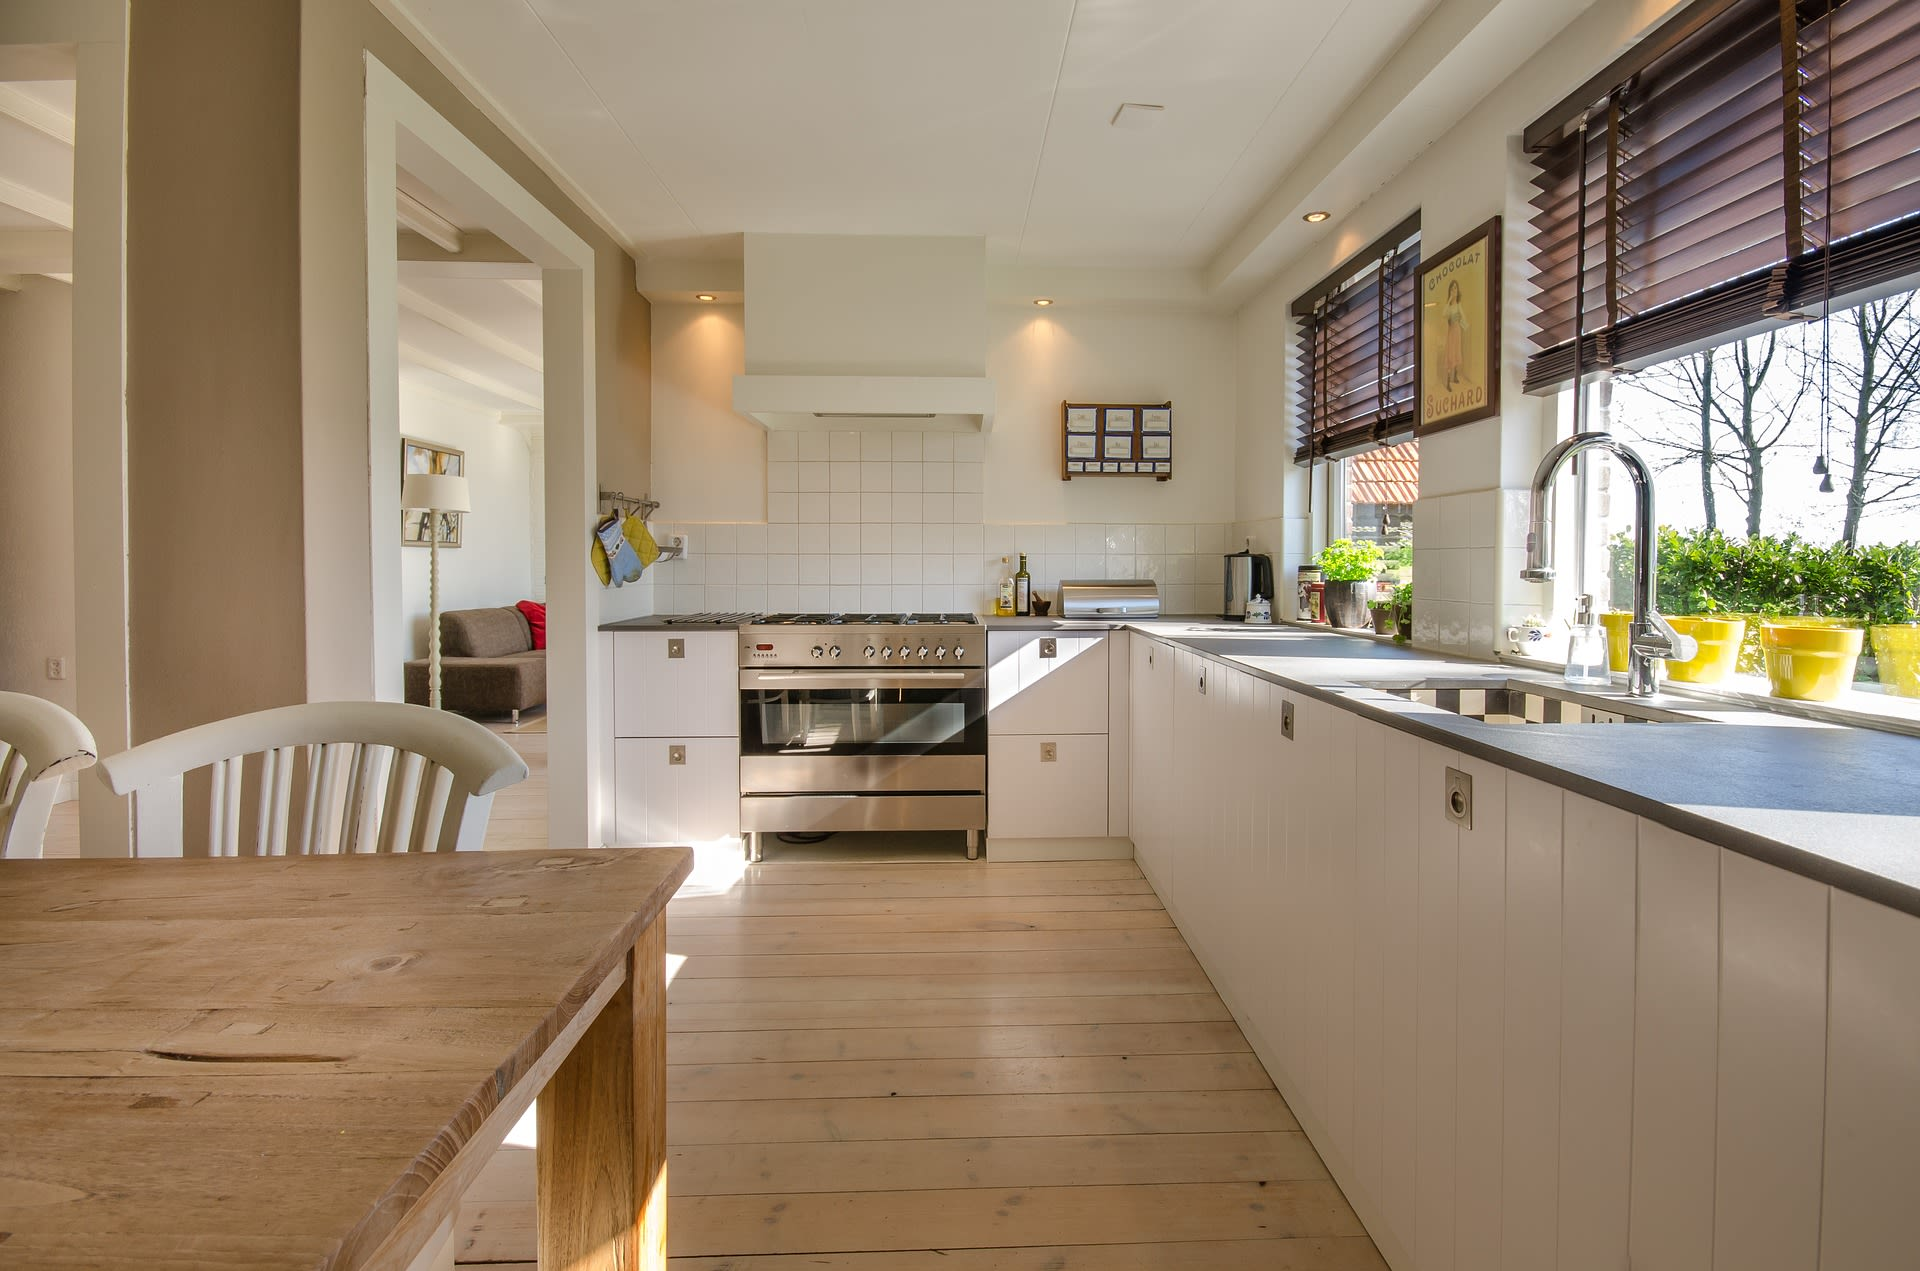 Make The Most Of Your Denver Kitchen Space! 7 Time-tested Organizing Tips